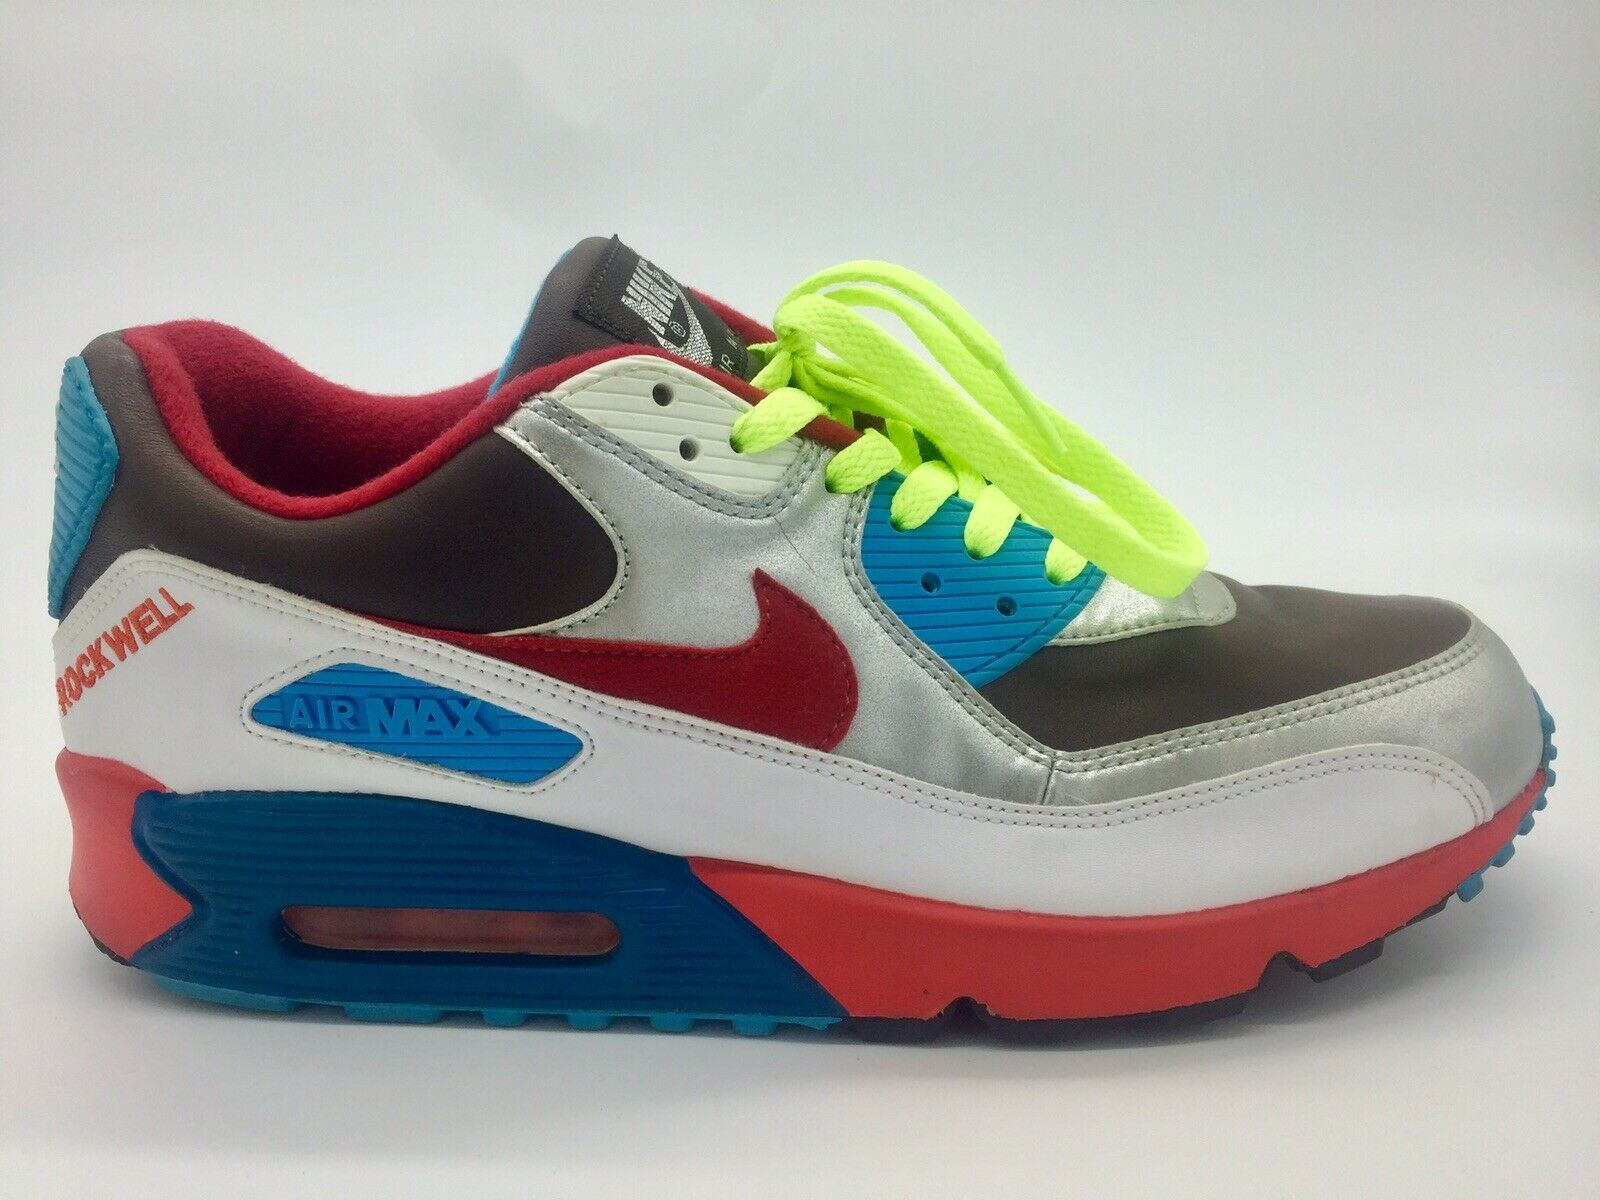 Nike Air Max 90 Nike ID Vintage Rare ROCKWELL Sz 10 Men's 314266-991 2005 shoes